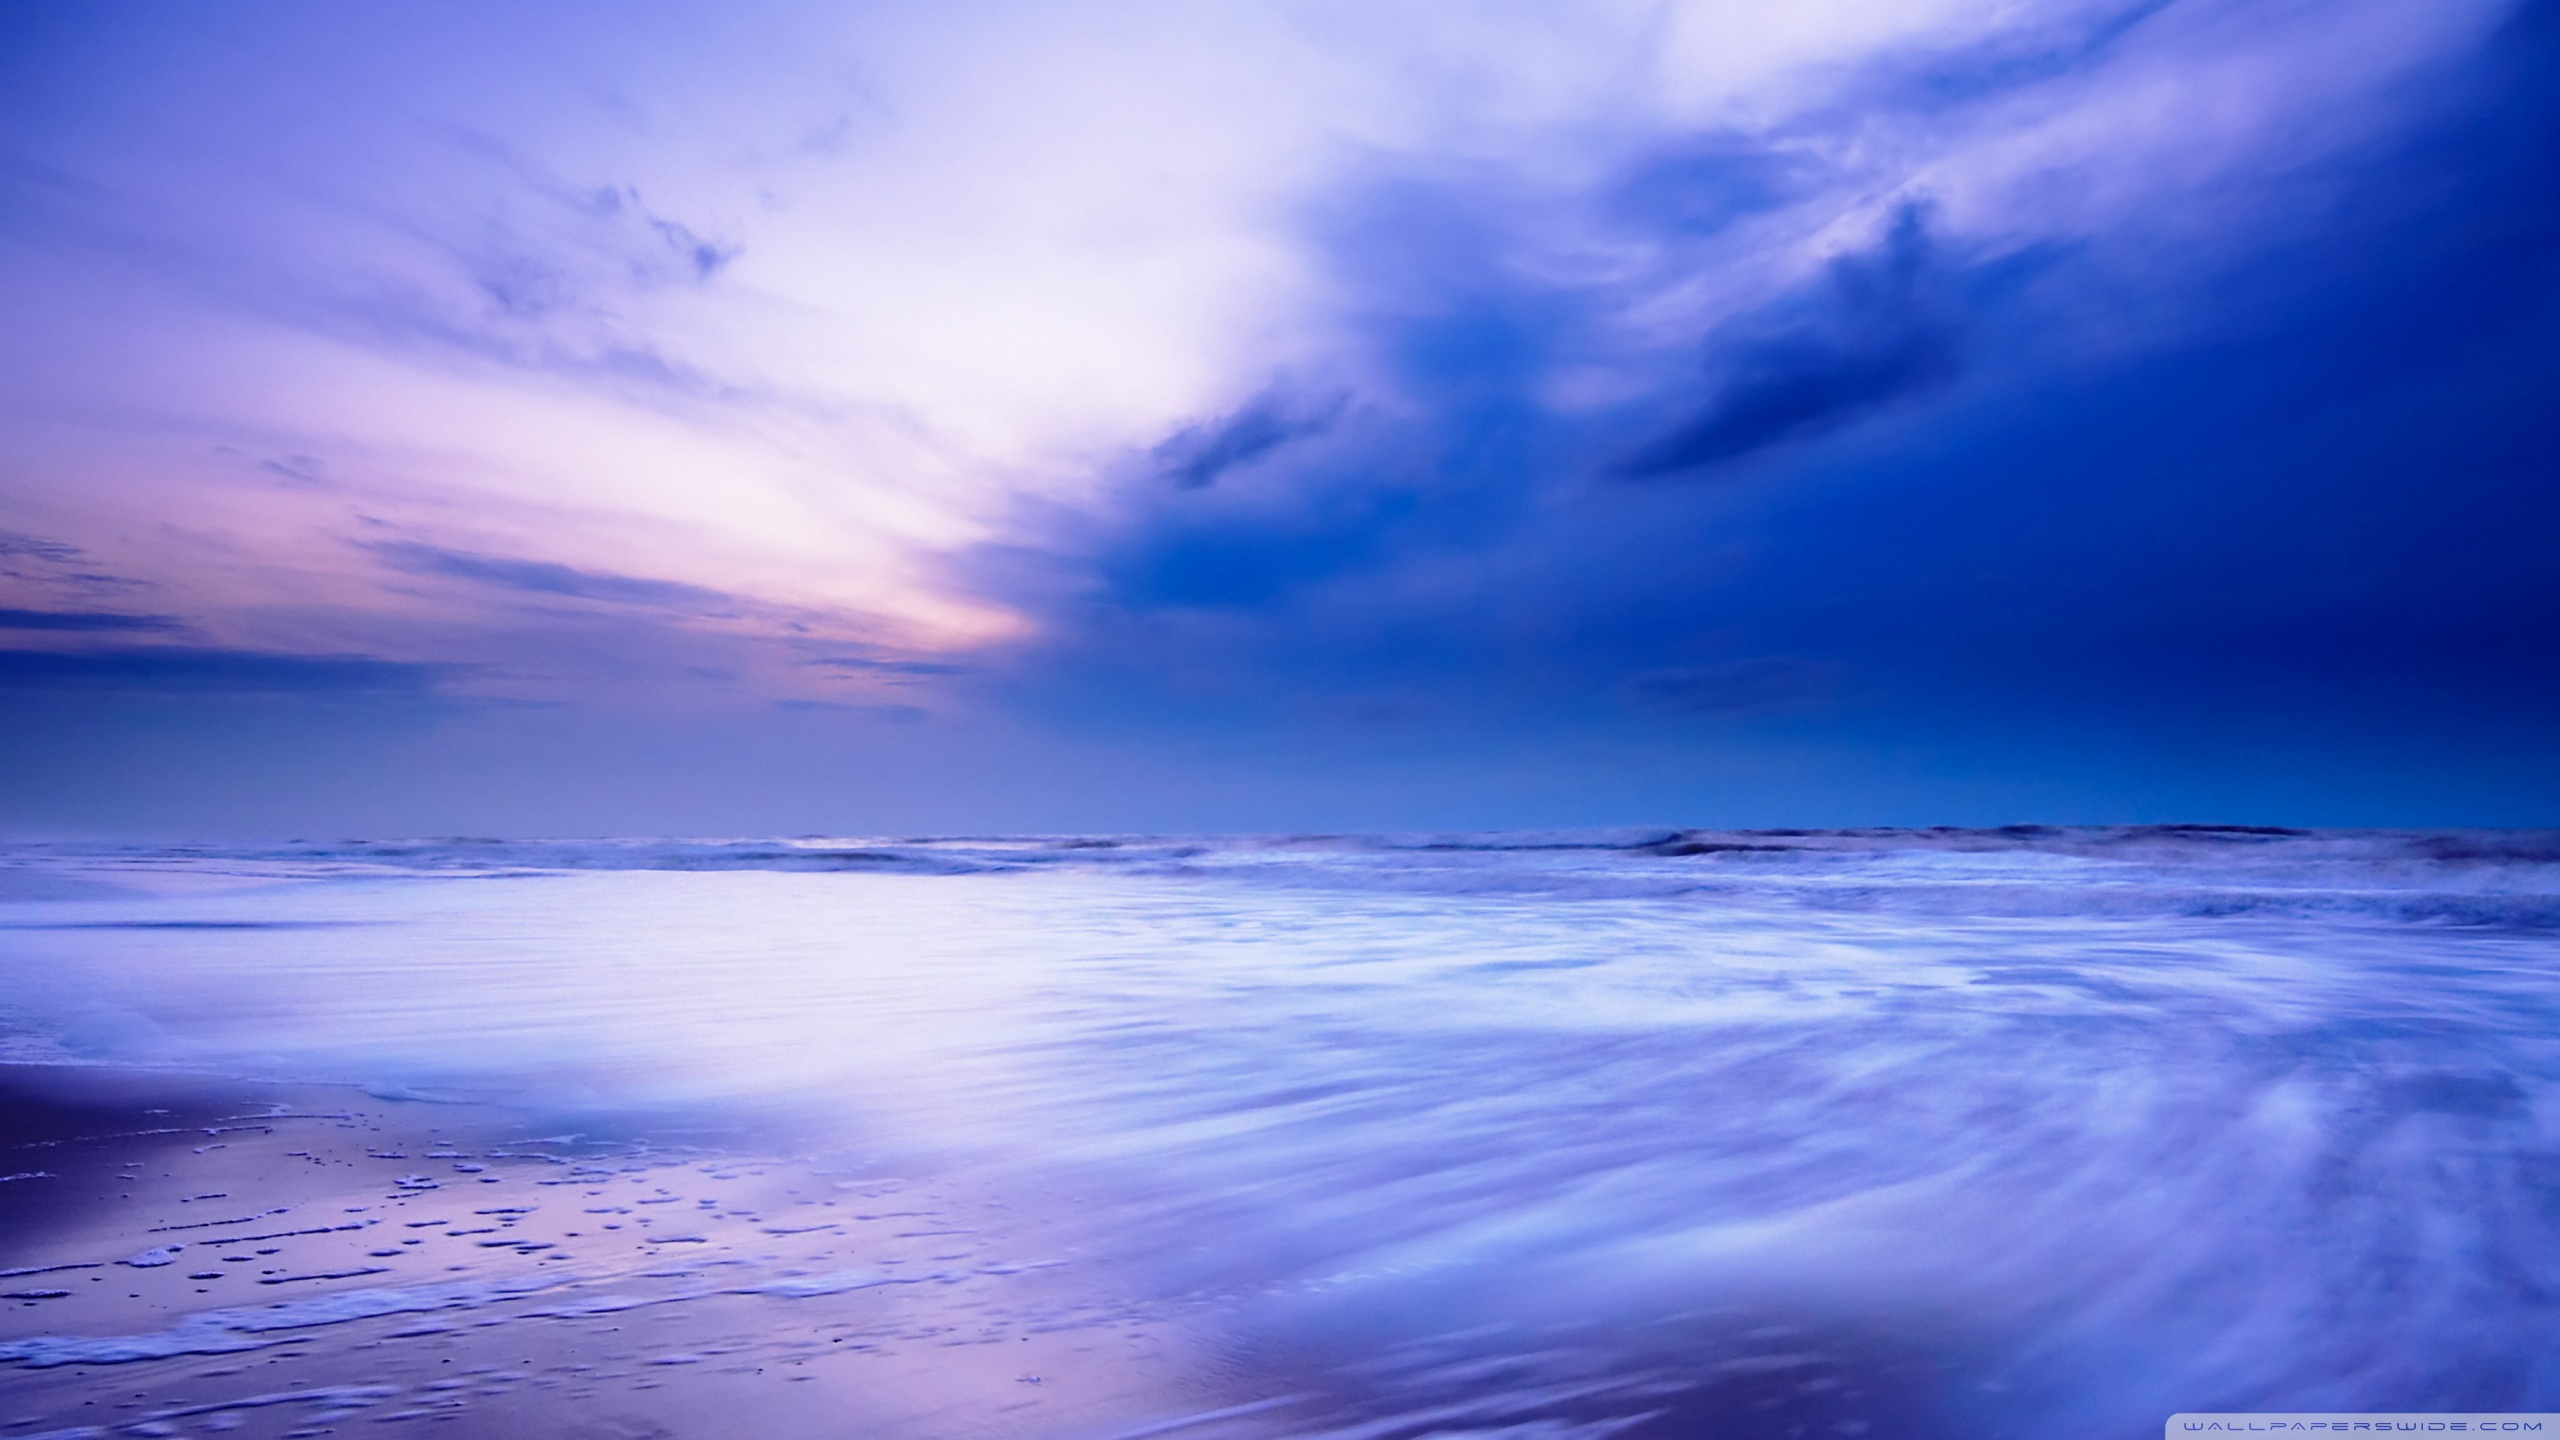 purple_landscape-wallpaper-2560x1440